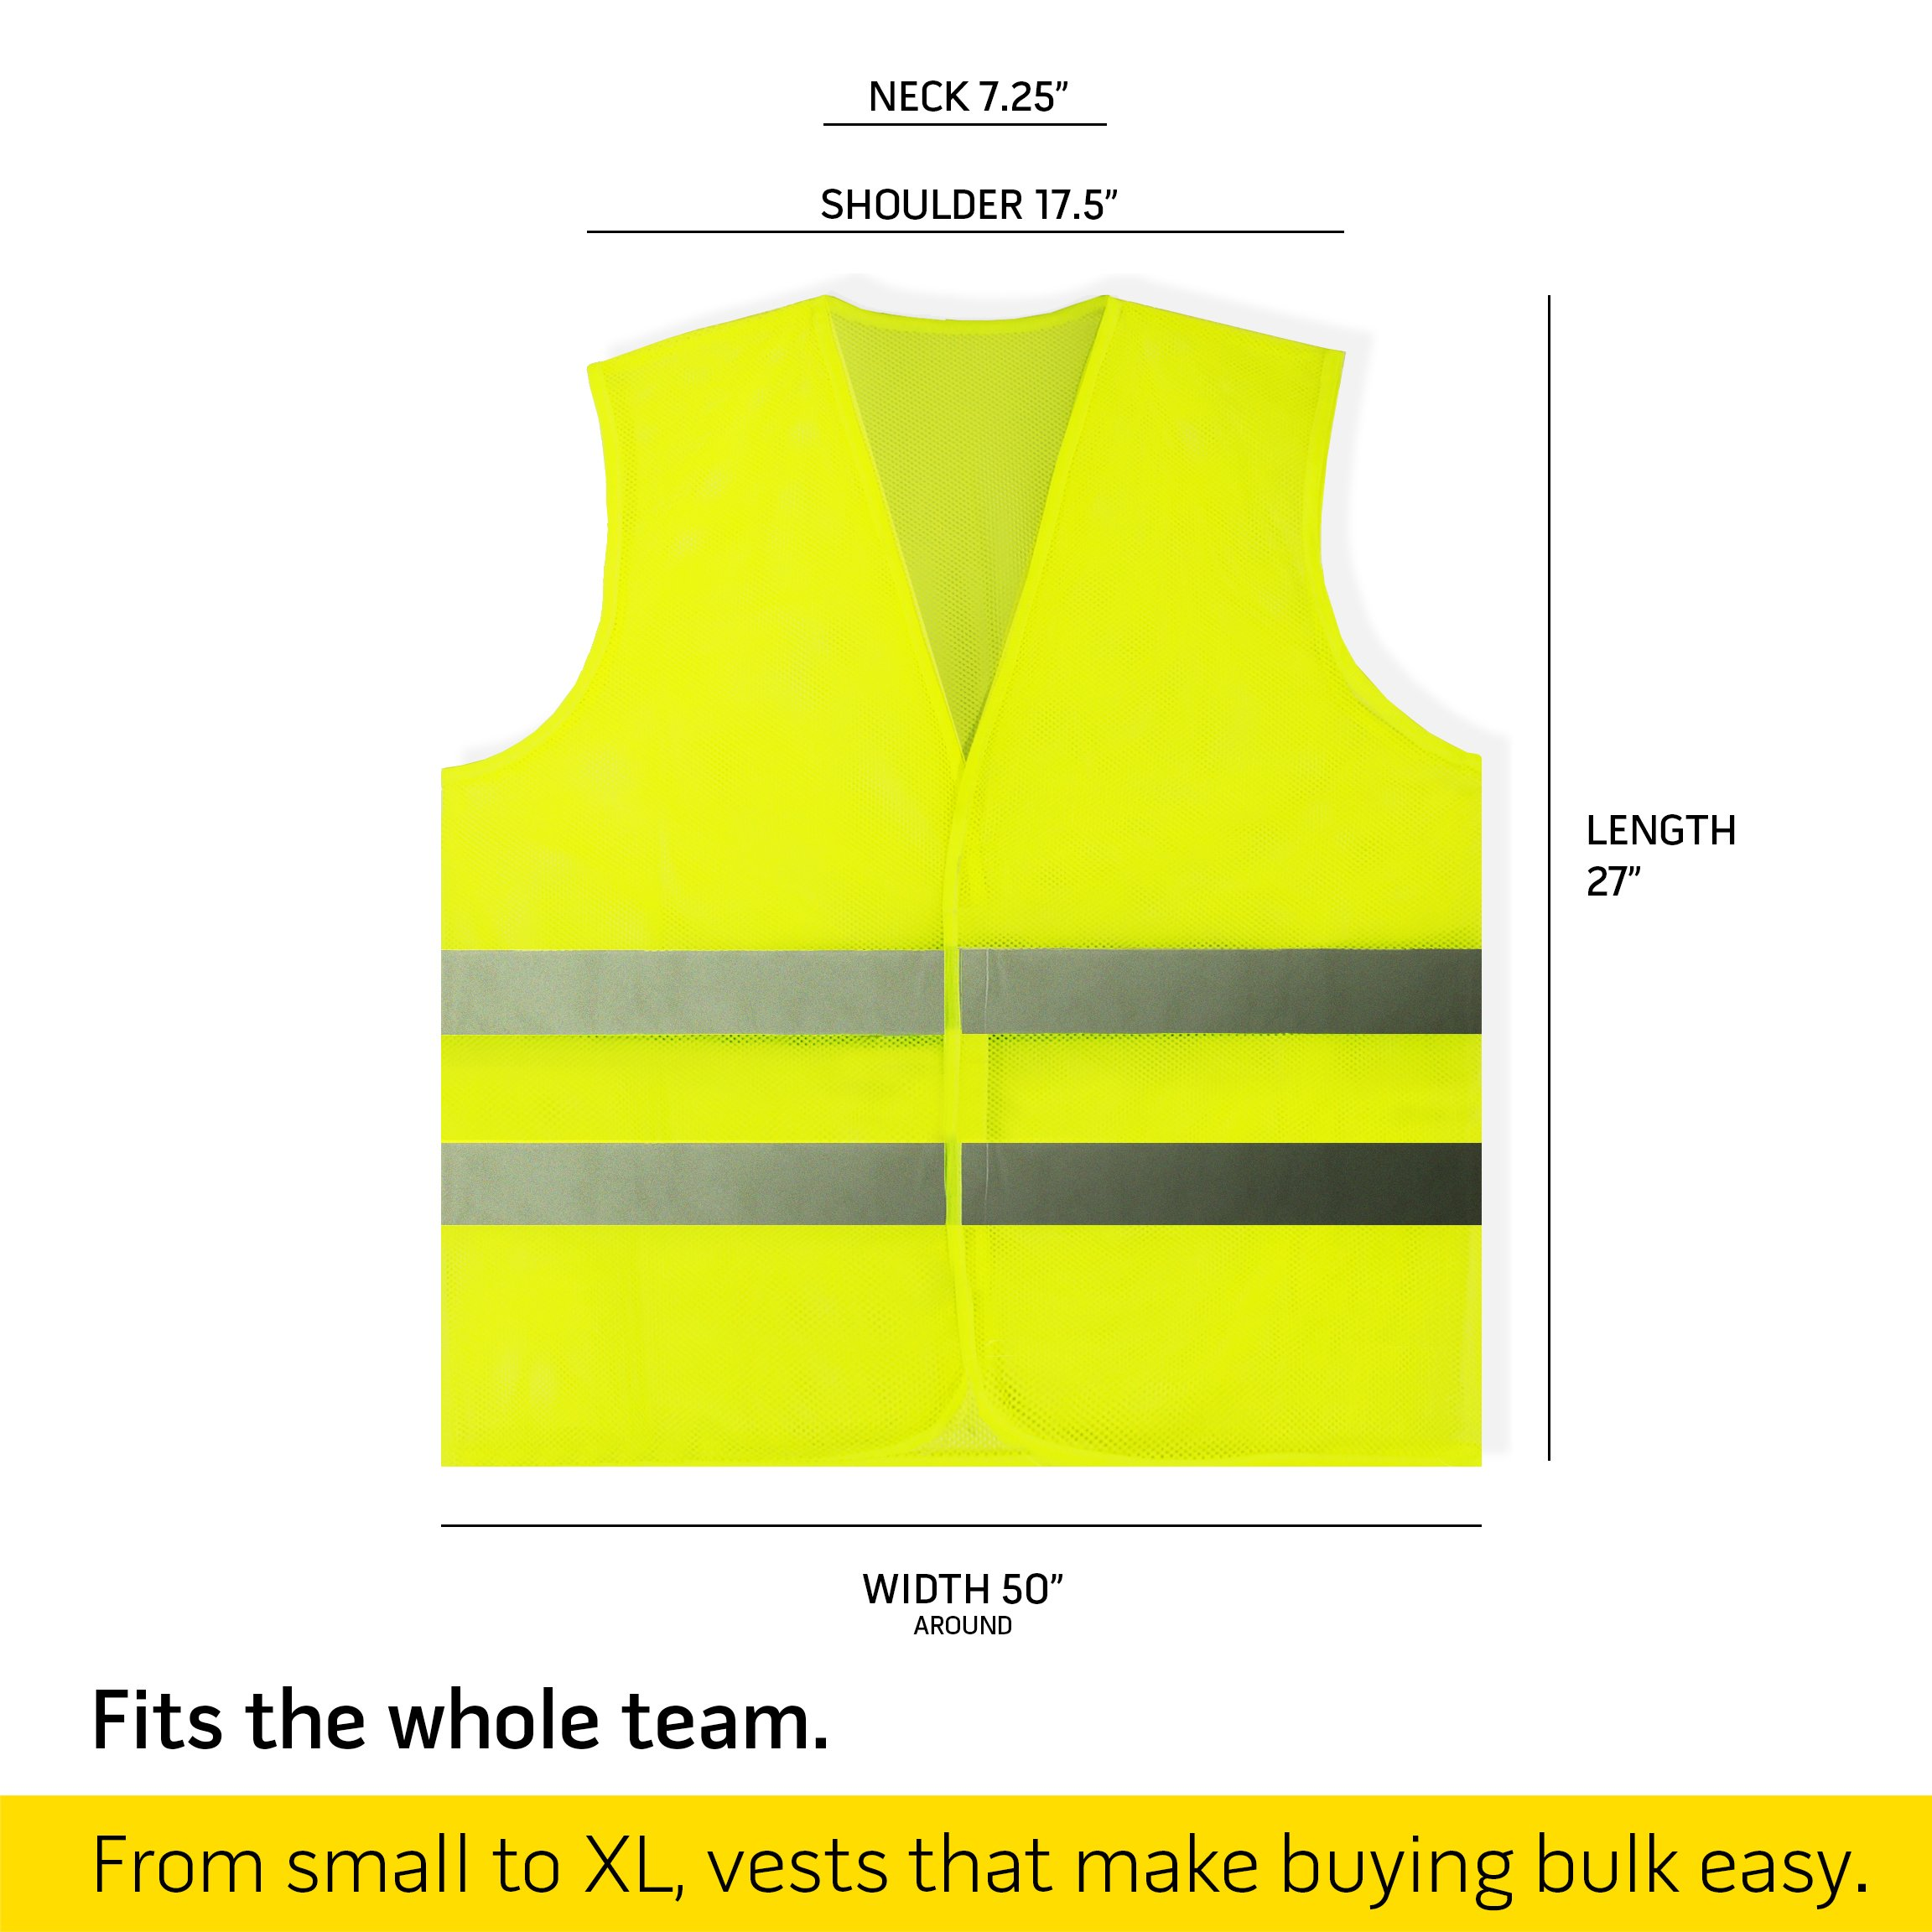 PeerBasics, 10 Pack, Yellow Reflective Safety Vest, Silver Strip, Bright Breathable Neon Yellow (Mesh, 10) by PeerBasics (Image #6)